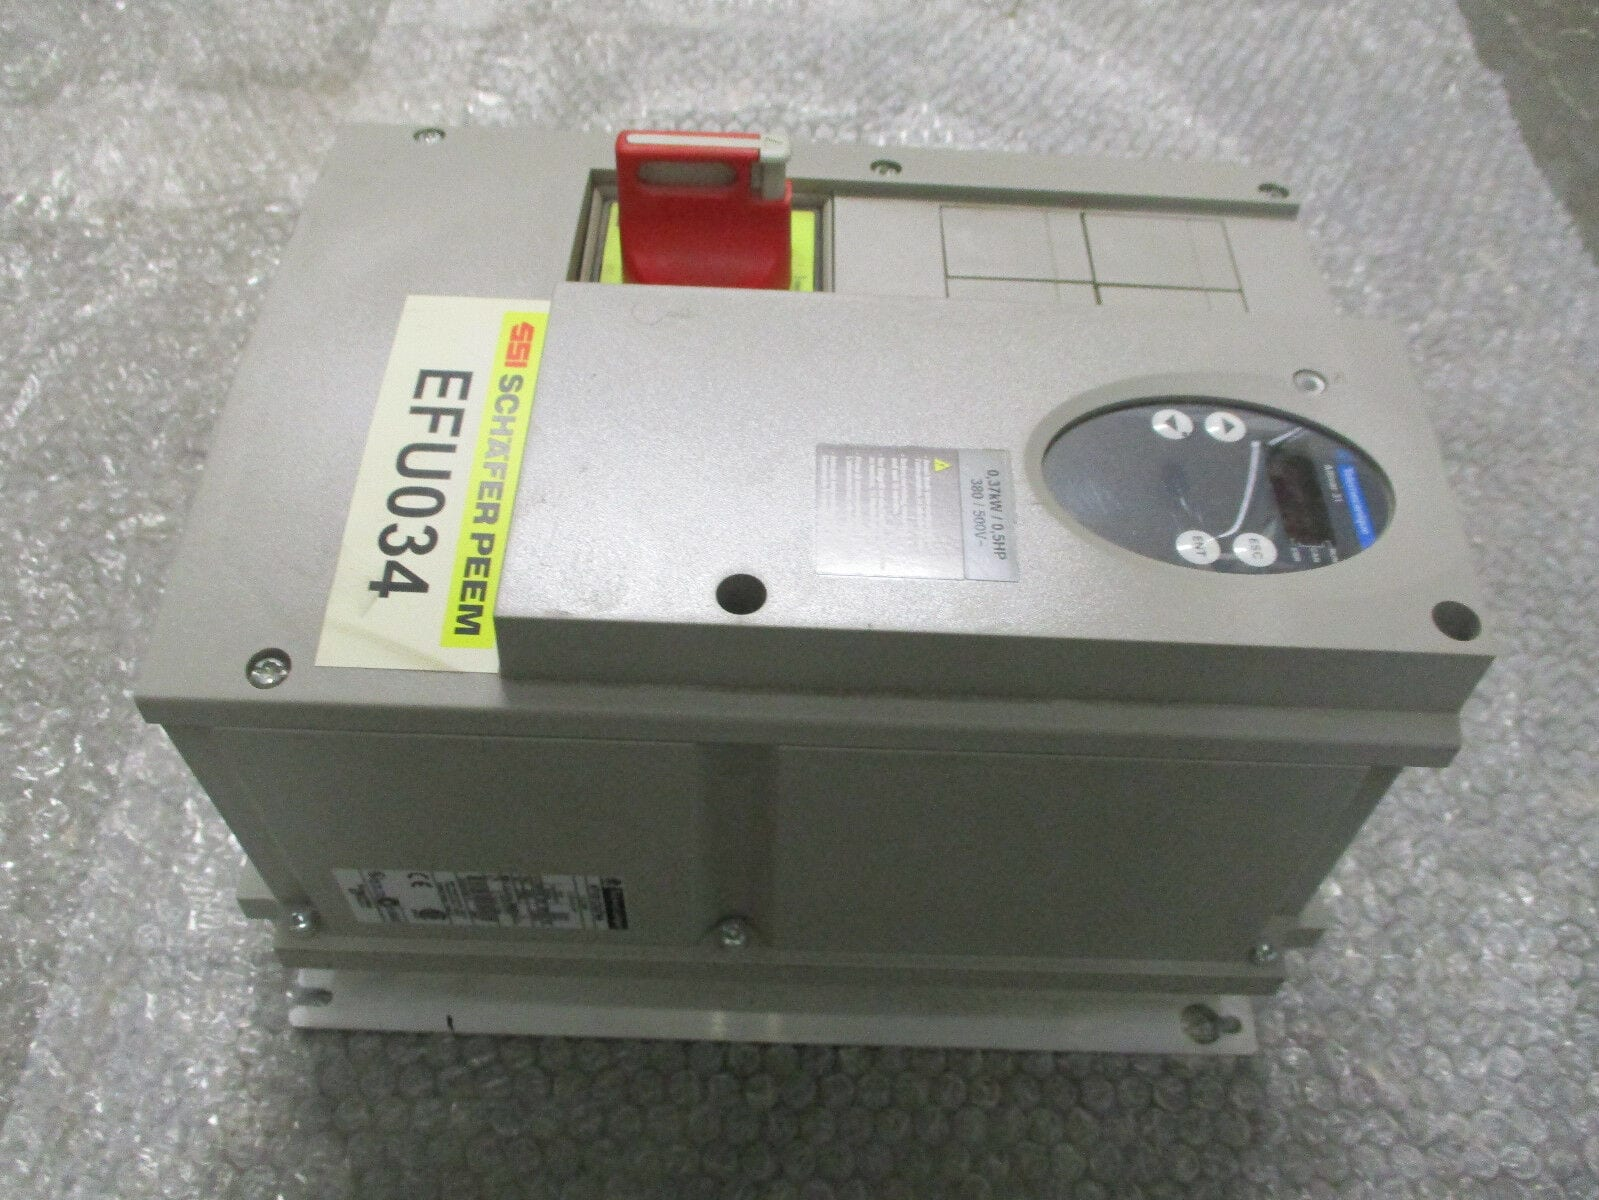 Telemecanique ATV31C037N4 Altivar 31 AC Drive 380/500VAC 0 5HP/0 37kW  *Tested